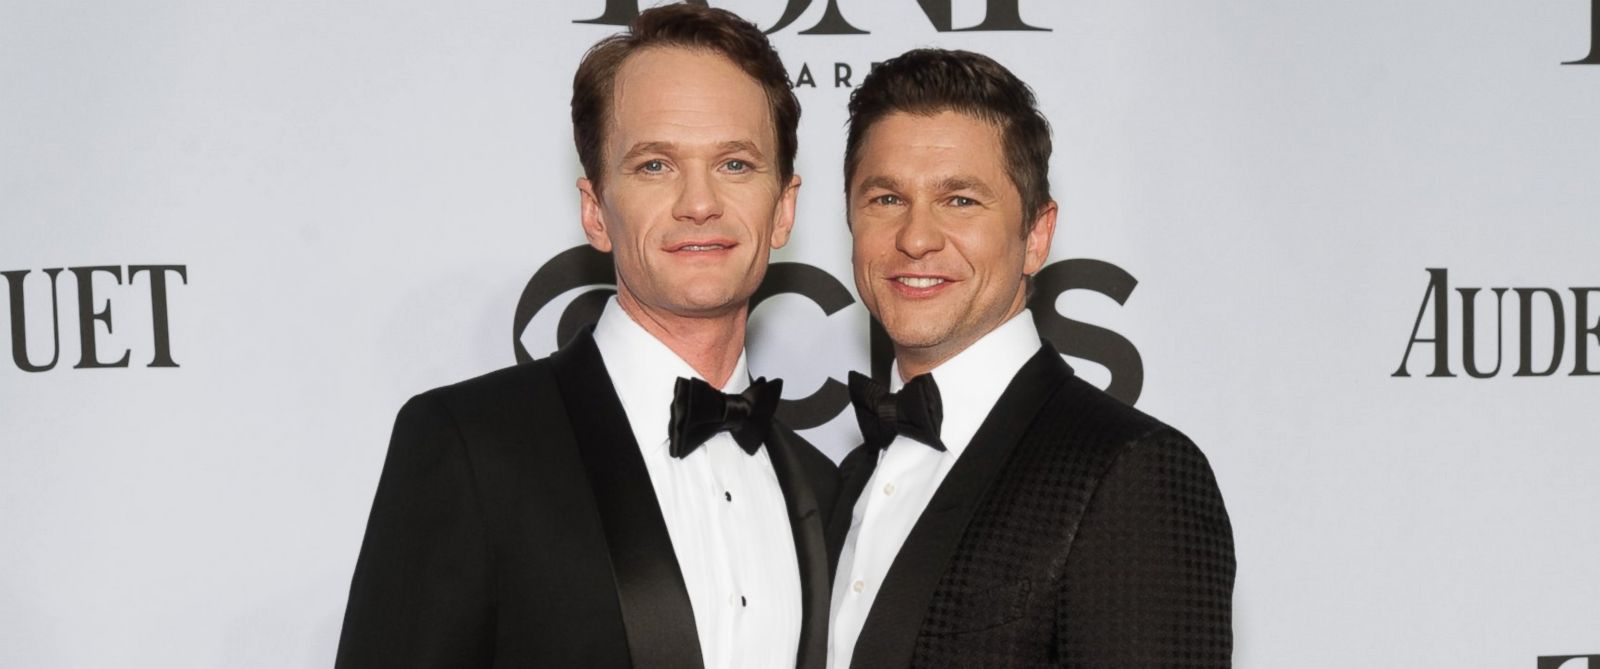 PHOTO: Neil Patrick Harris, left, and David Burtka, right, attend the American Theatre Wings 68th Annual Tony Awards at Radio City Music Hall on June 8, 2014 in New York City.